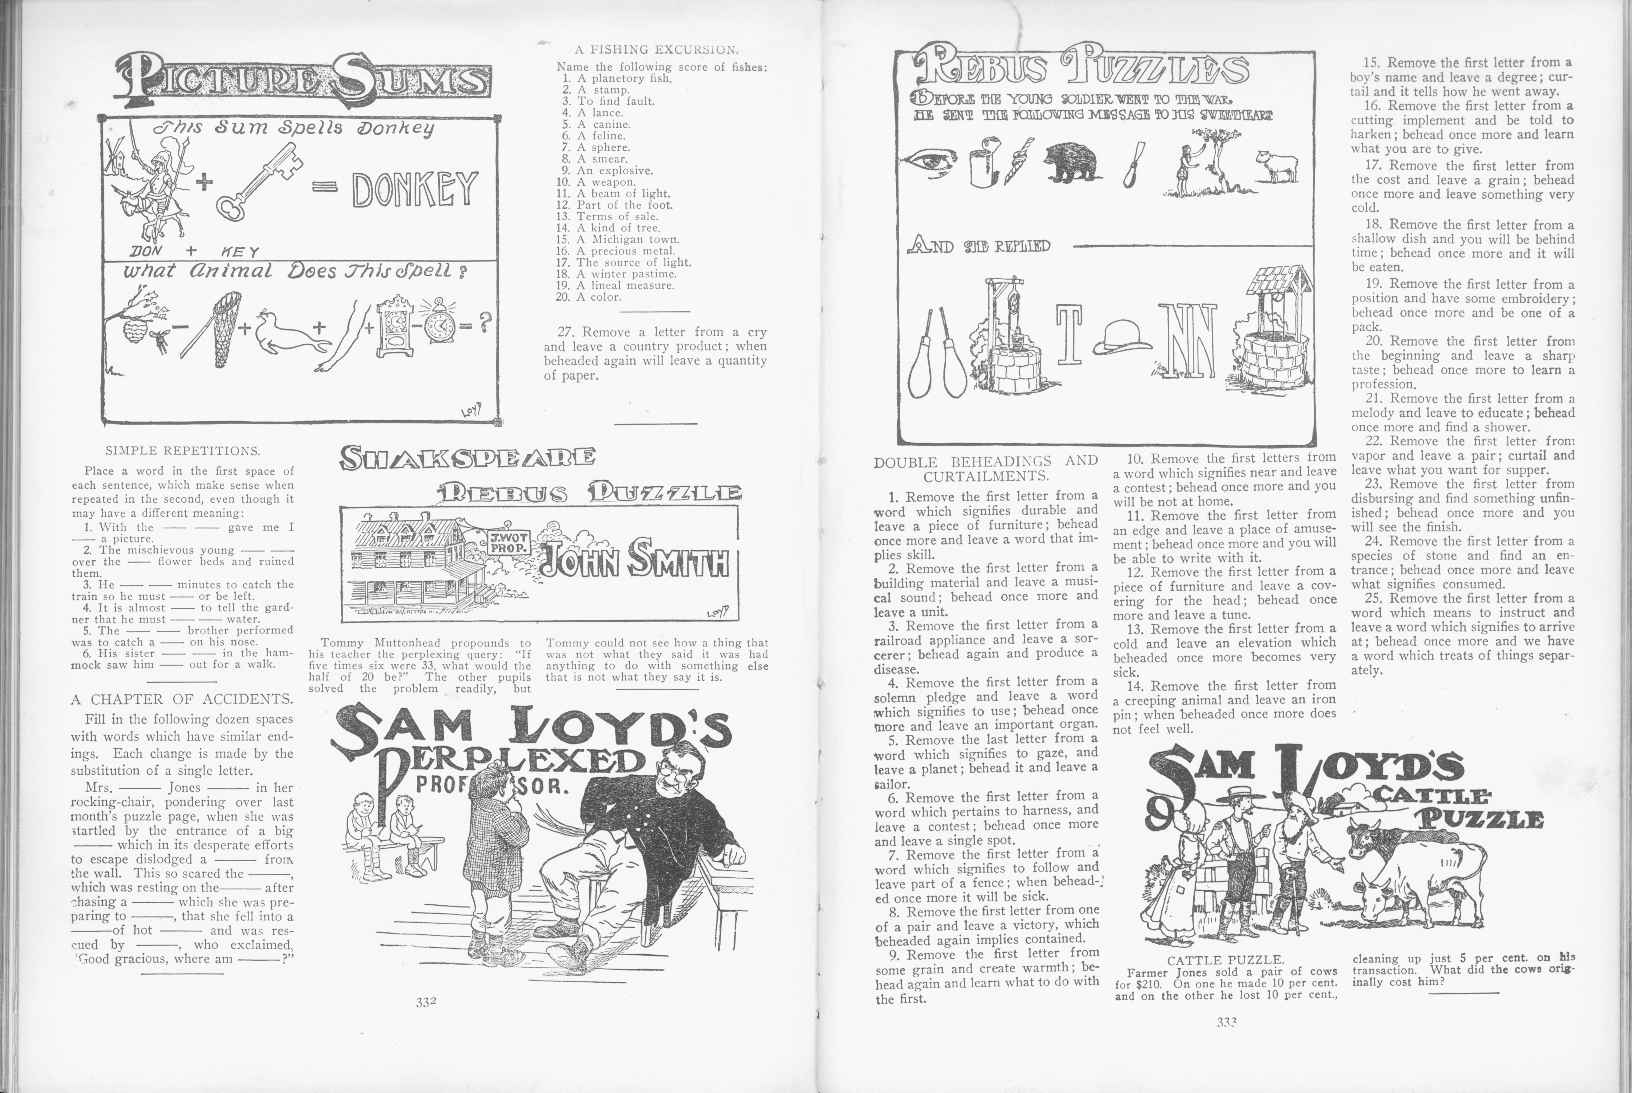 Sam Loyd - Cyclopedia of Puzzles - page 332-333